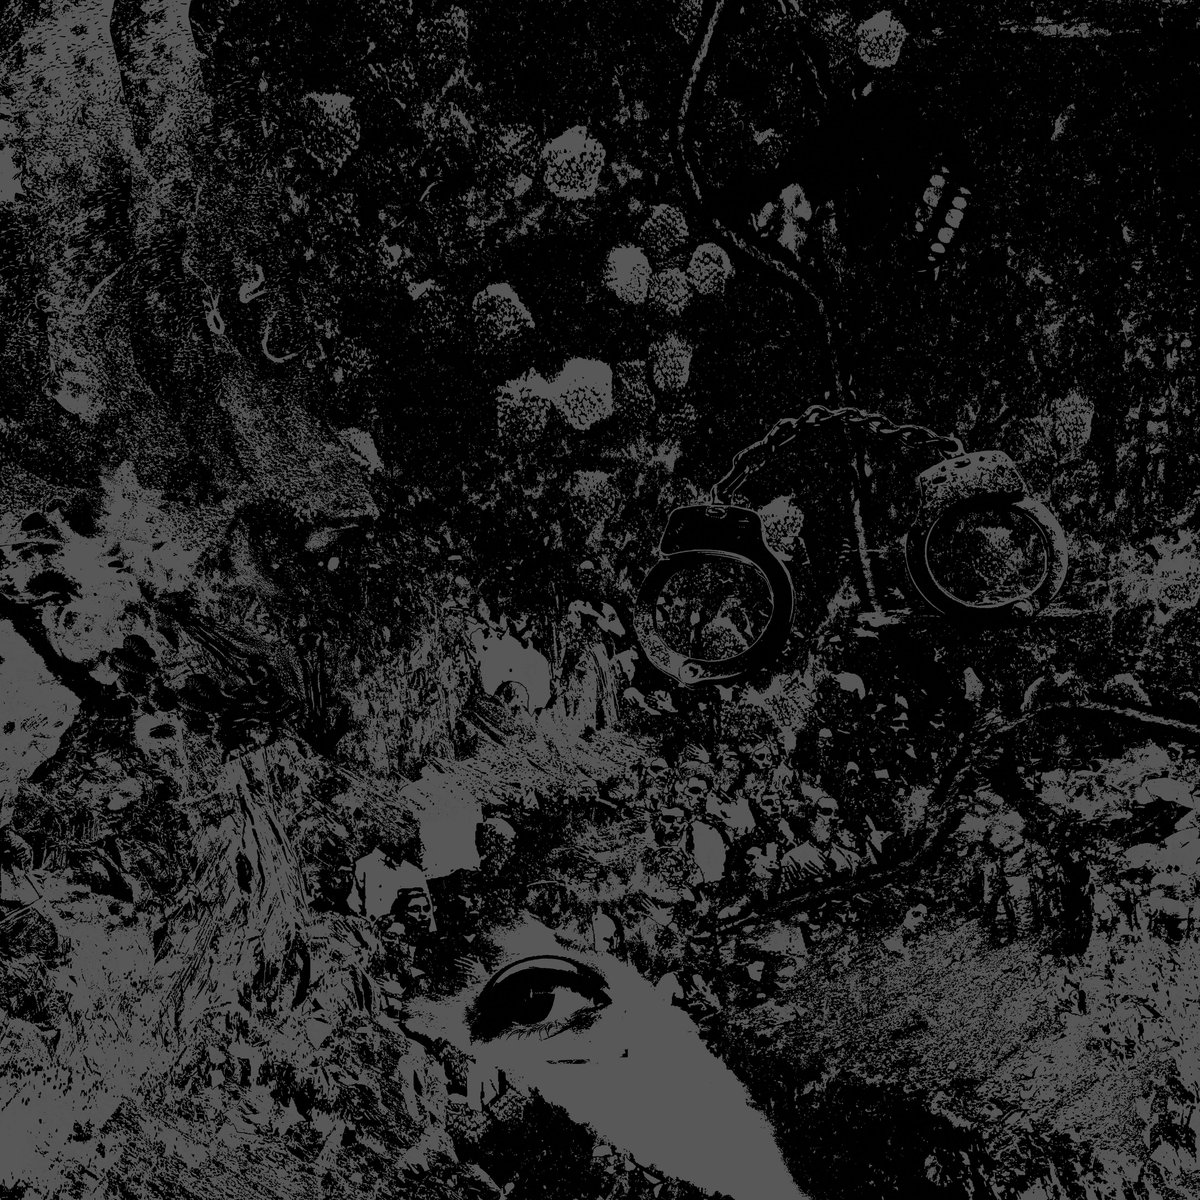 """Split by Primitive Man & Unearthly Trance -  I am quite divisive on the subject of splits. Pun very intended. Yes, already. But, seriously, I am. I am much more of an album kinda dude (shockingly). Even when a band releases a single, nine times out of ten I store it in the back of my convoluted psyche next to all the other doom, death, and lifting I gotta do. If for no other reason than I just enjoy listening to music the way it is intended be presented, not just a single or a mixed bag of songs contributing to a split or even EP. Which, I love EP's, if they are constructed as such; meant to be listened to like an album, rather than rehashed old tunes or remixes fix up with one or two new singles. I feel the """"single' is usually not as strong on its own, but rather makes more sense and sounds better within the context of the record, that is, if the record is actually good. If were talking about 2:30 power pop tune, which definitely has its place, then by all means; single all the way. Not another stupid fucking pun in the first paragraph YOU SON OF A BITCH. Yes I did. Back to the split, I've always felt a little weird about it. I know it is very common in the underground metal/hardcore scene for two bands to share an EP's length of songs together, aka the split. Each band will contribute a close to even number of songs in either quantity or runtime, and the result is usually, for me, consulted and underwhelming. UNLESS, that is, the two bands are a great match up, work together, perhaps feeding off one another, to create a musical venture that is cohesive, meaningful, and due to its usual brief runtime, to the point. Such is the case with the marriage of depressive sludge Denver dwellers, Primitive Man; and Brooklyn bad motherfuckers Unearthly Trance. The split, aptly titled, Split, has forced me to reevaluate my opinions on the matter due to its undeniable musical purpose and atrocious nature. As this split is divided in a very cool, old-school-type way, Side A is P"""